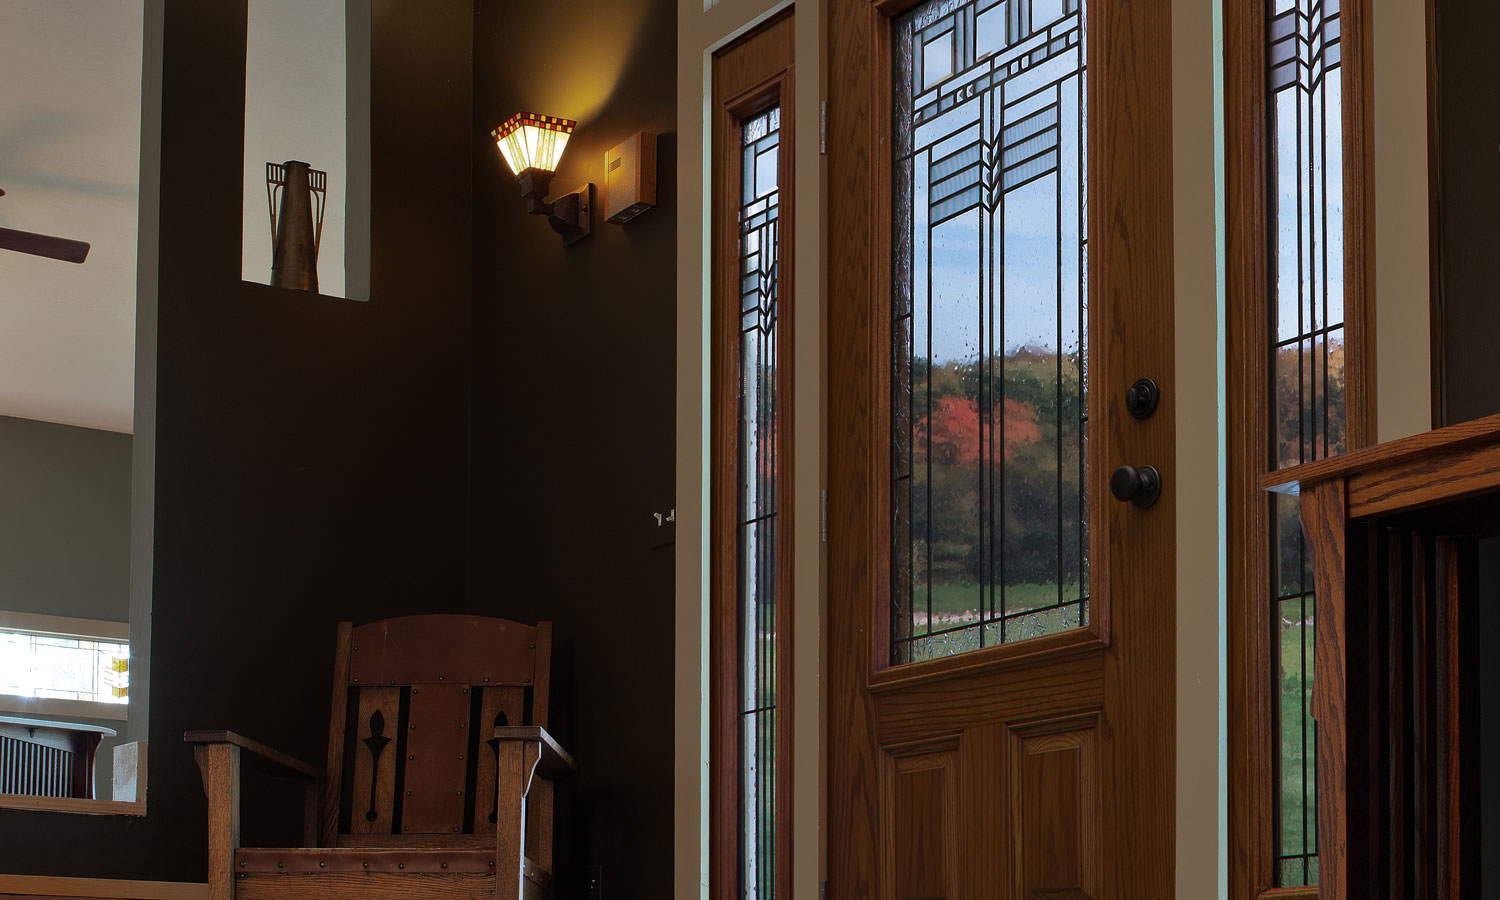 Clear Glass | Exterior Doors | Milliken Millwork Inc. | Your Doorway to a Beautiful Home® & Clear Glass | Exterior Doors | Milliken Millwork Inc. | Your ...